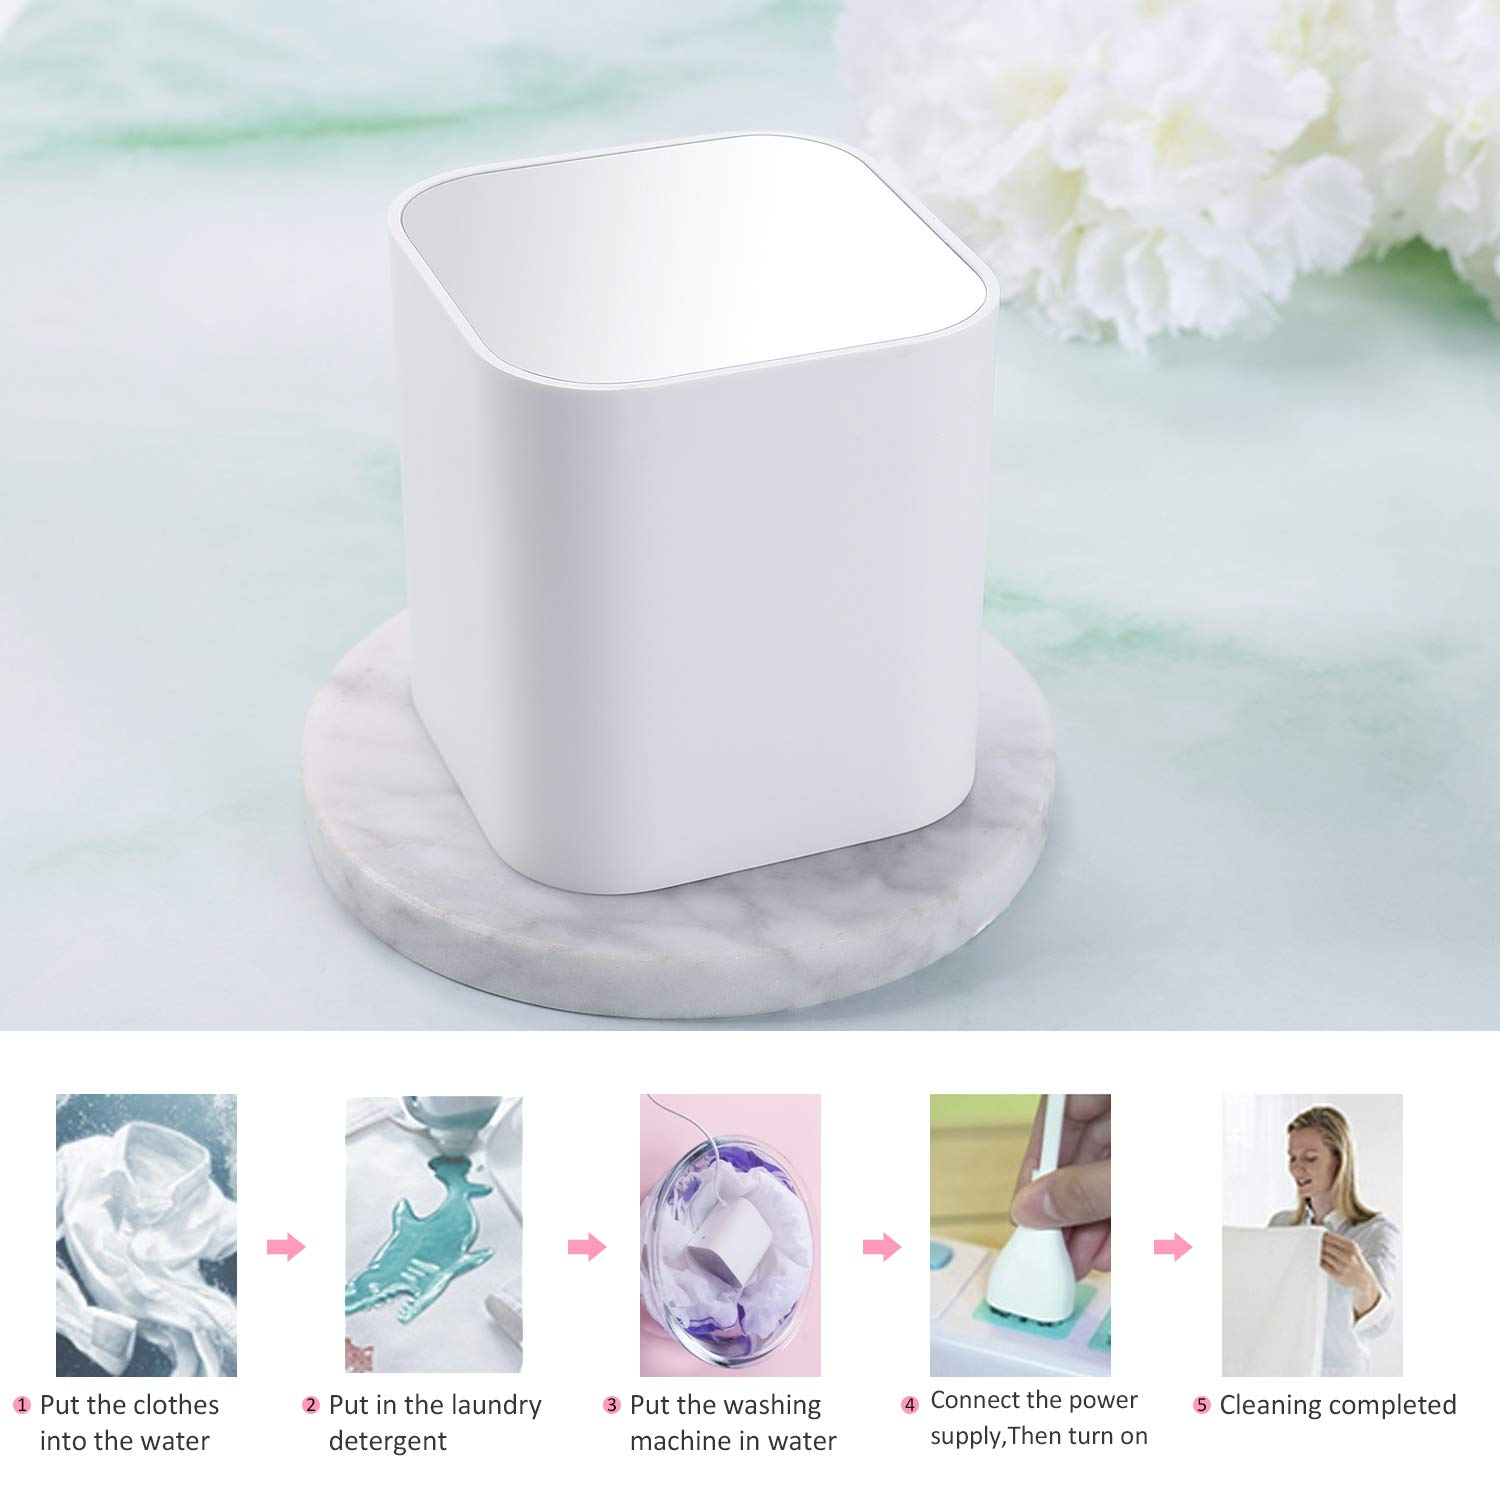 cups et mini Ultrasonic Multi-Function Cleaner for washing underwear jewelry Ultrasonic washer razors makeup brushes Kevinste portable Ultrasonic washing machine watches fruits baby products